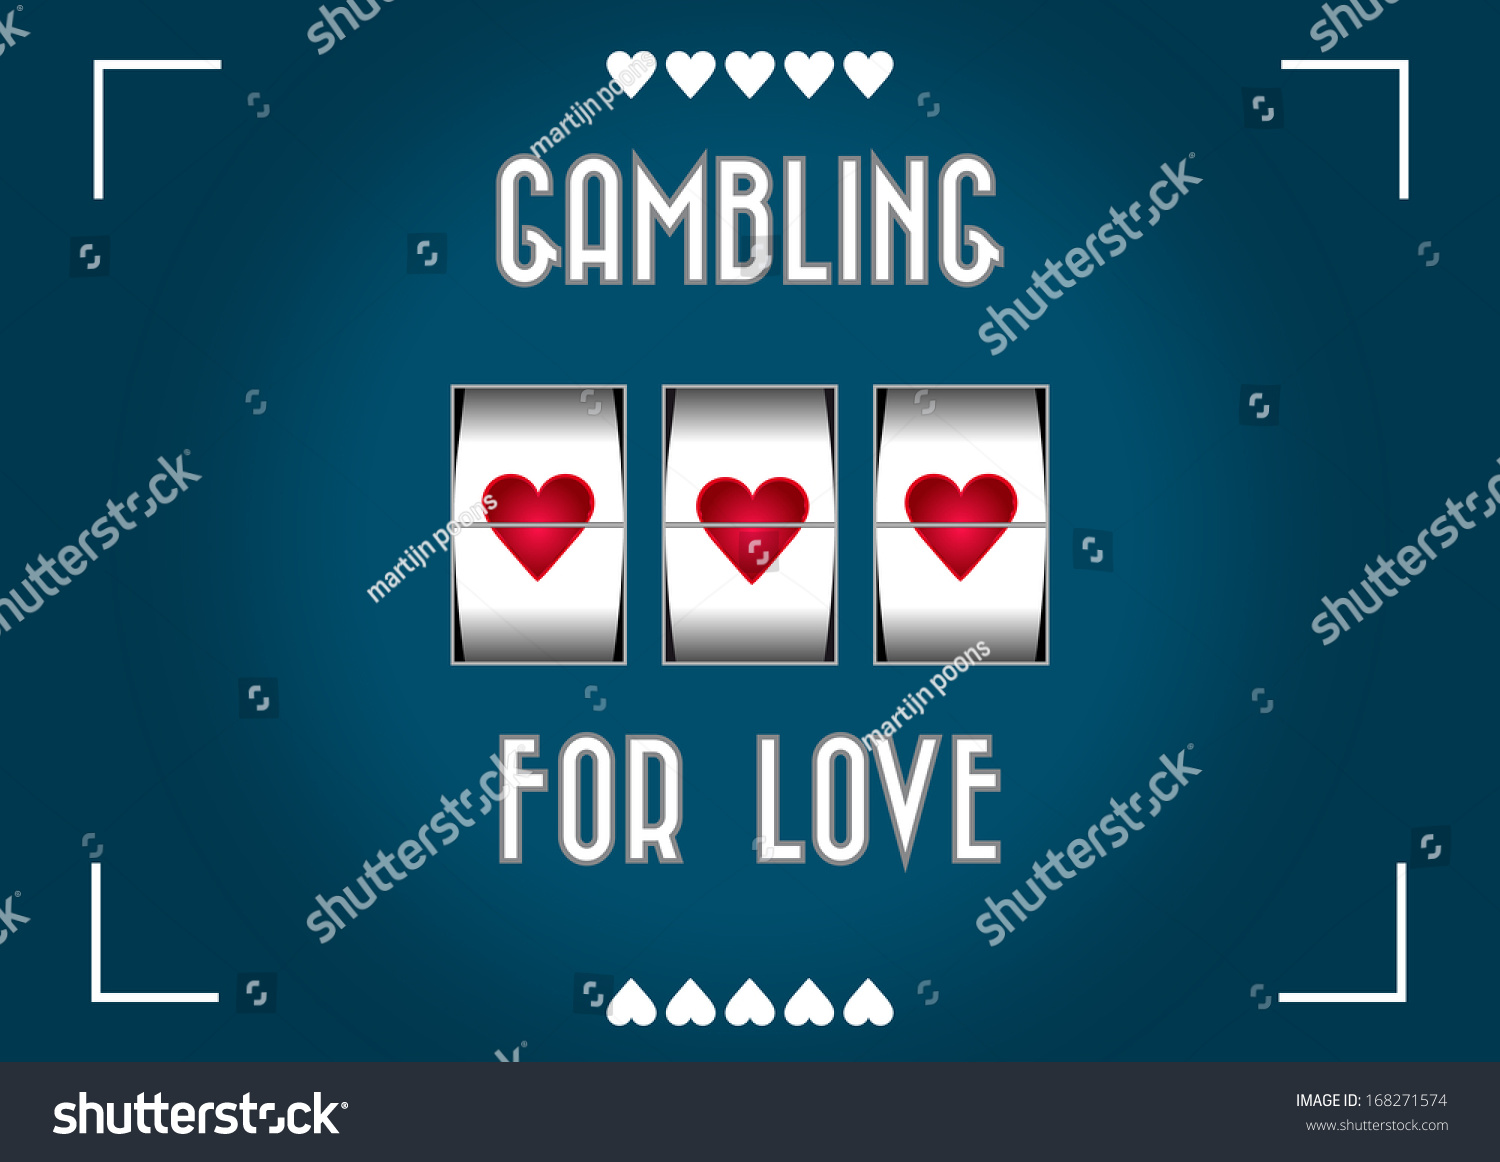 Love gambling how to beat organic roulette